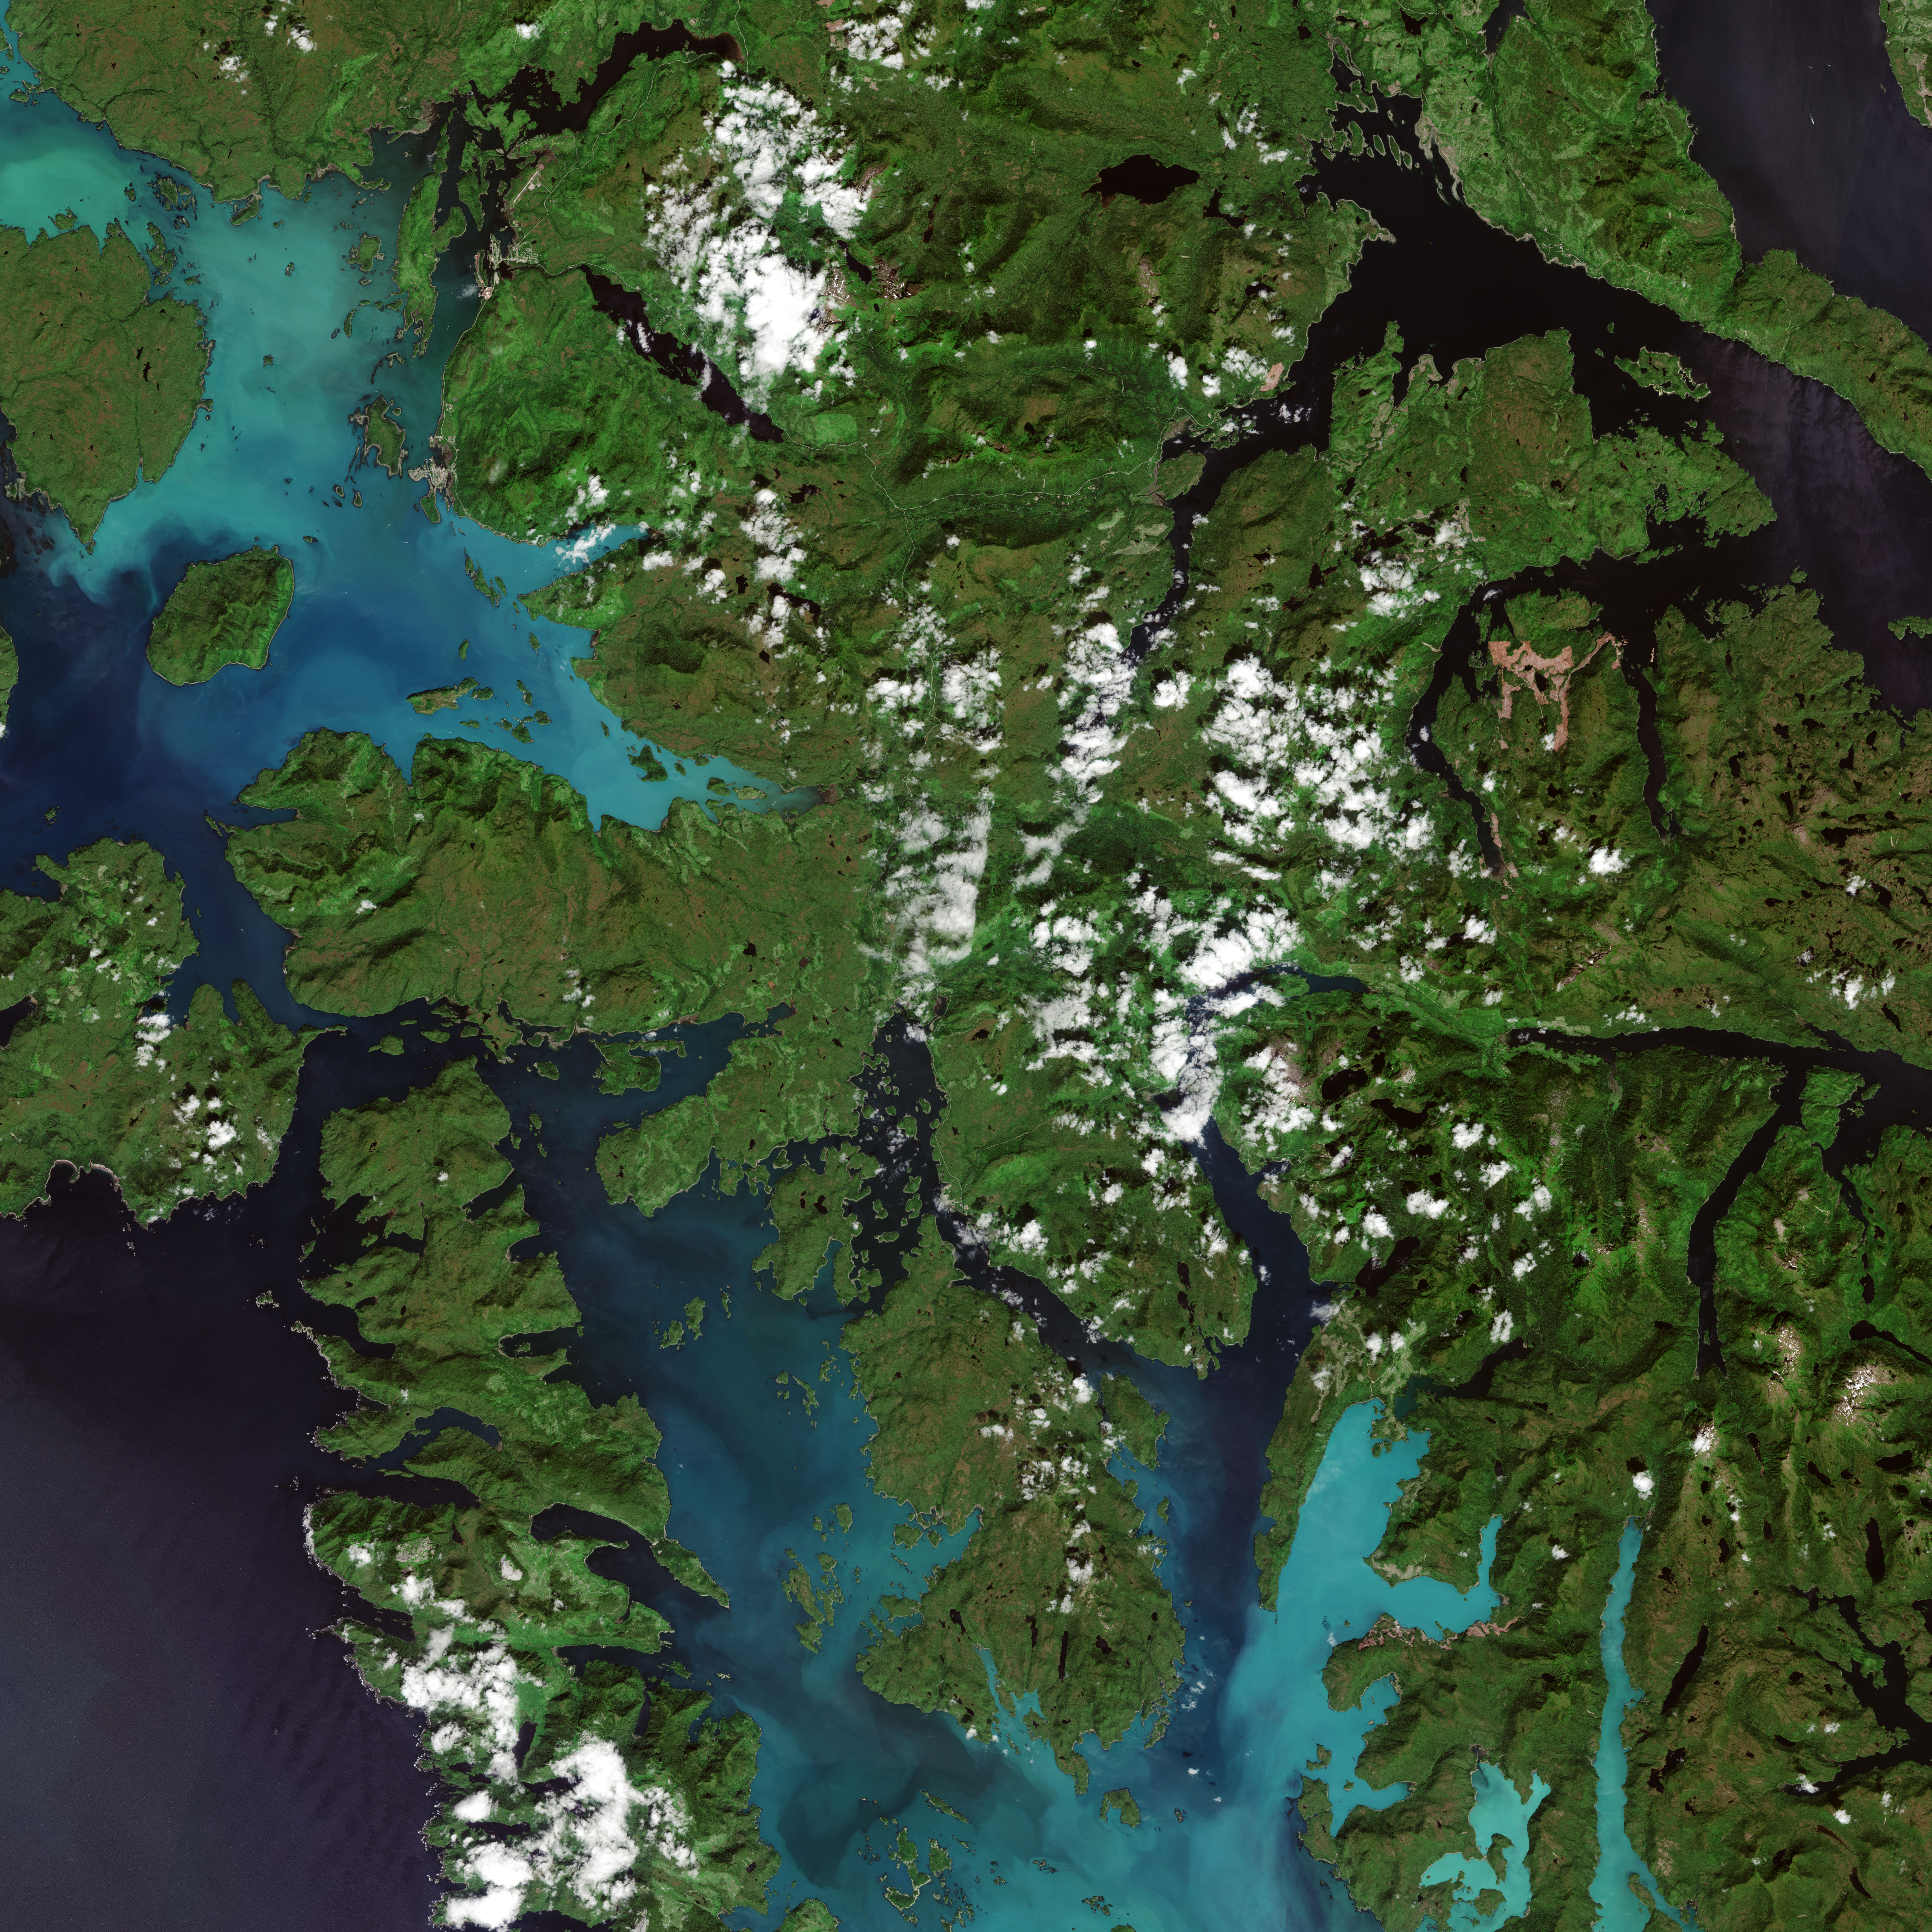 Milky Blue Water Near Prince of Wales Island - related image preview